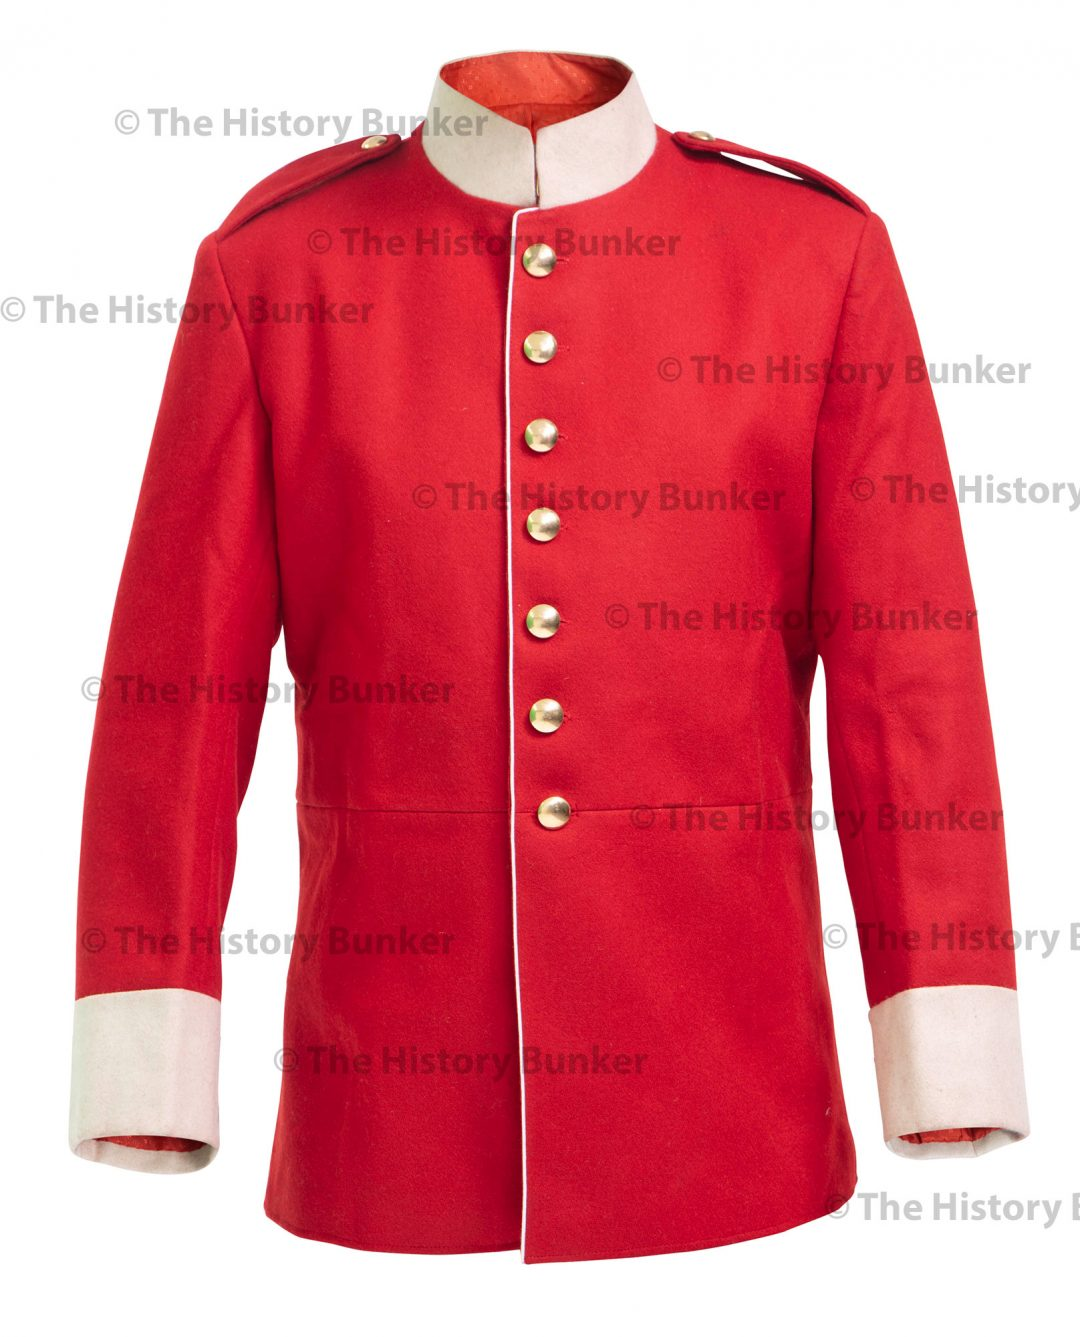 15th Regiment of foot tunic